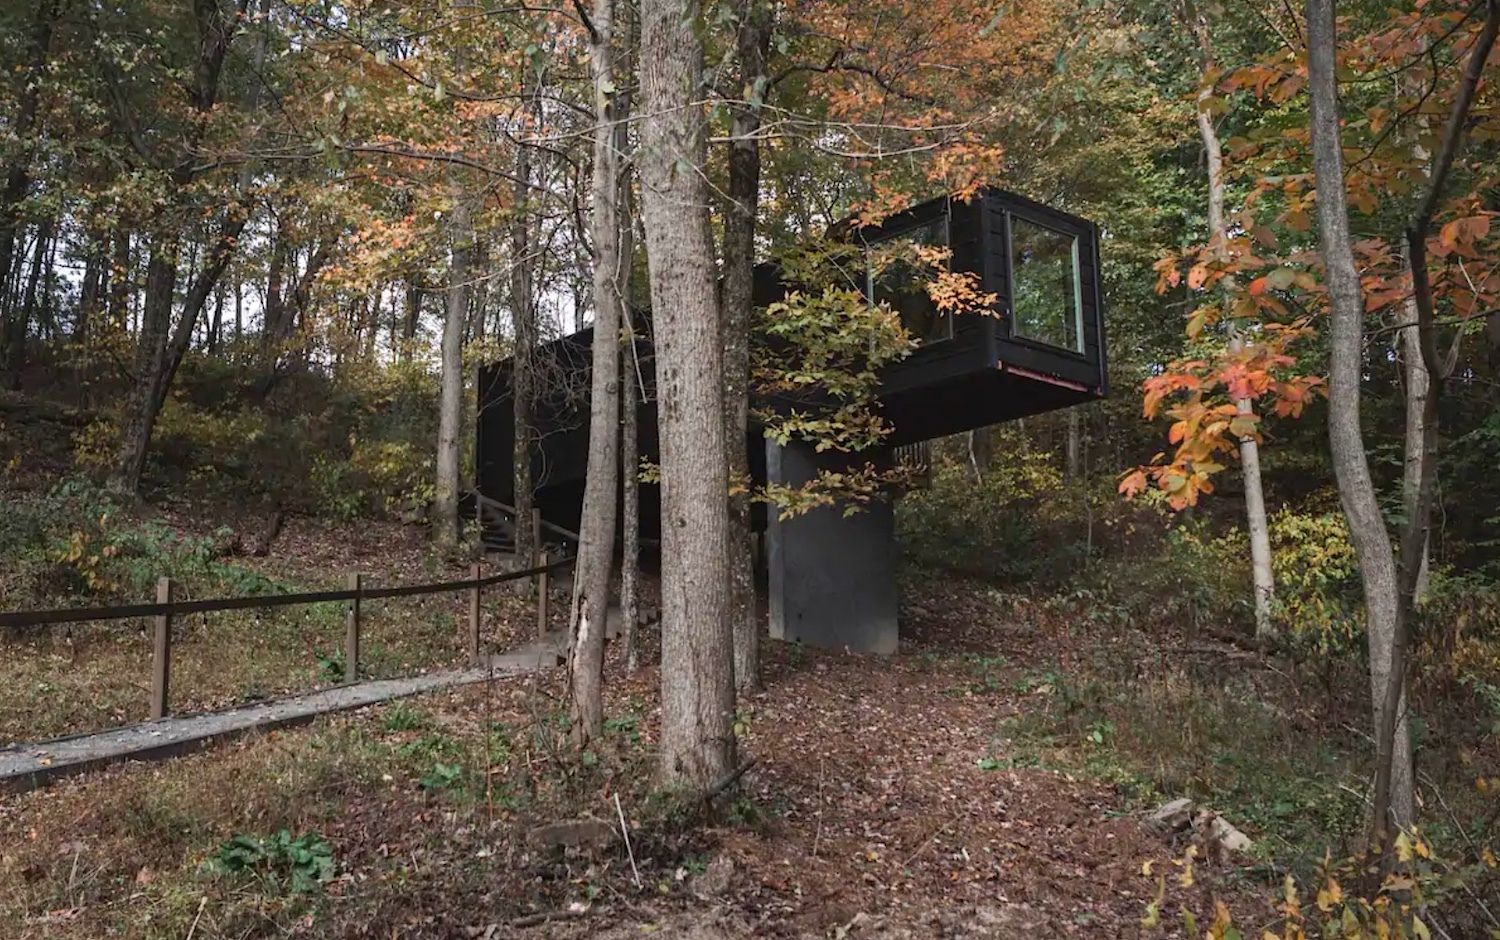 treehouse-village-box-Ohio-most-wishlisted-midwest-airbnbs